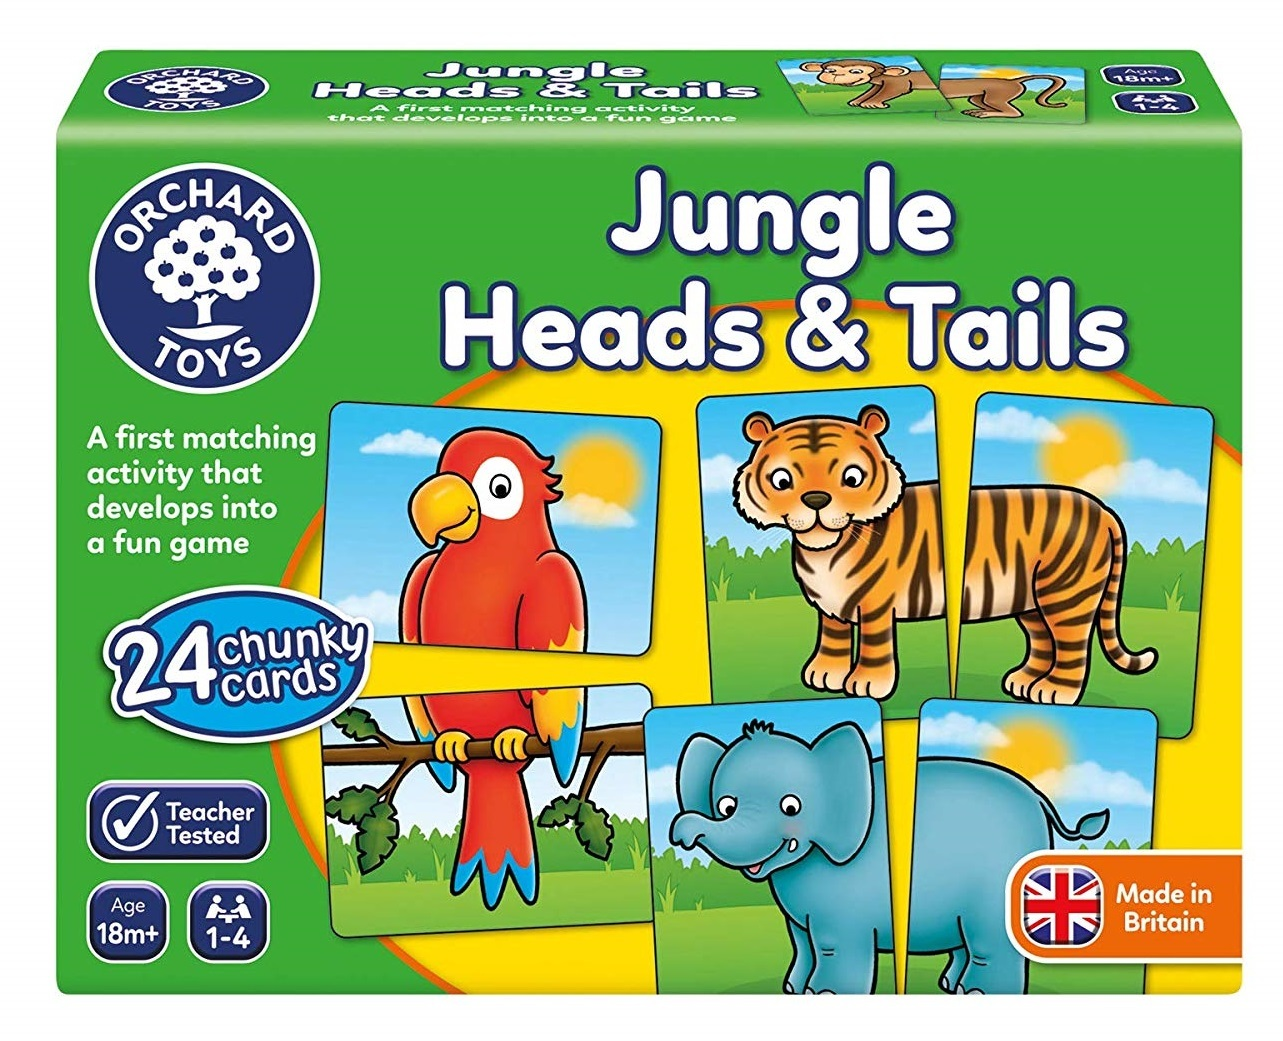 Orchard Toys: Jungle Heads & Tails - Children's Game image